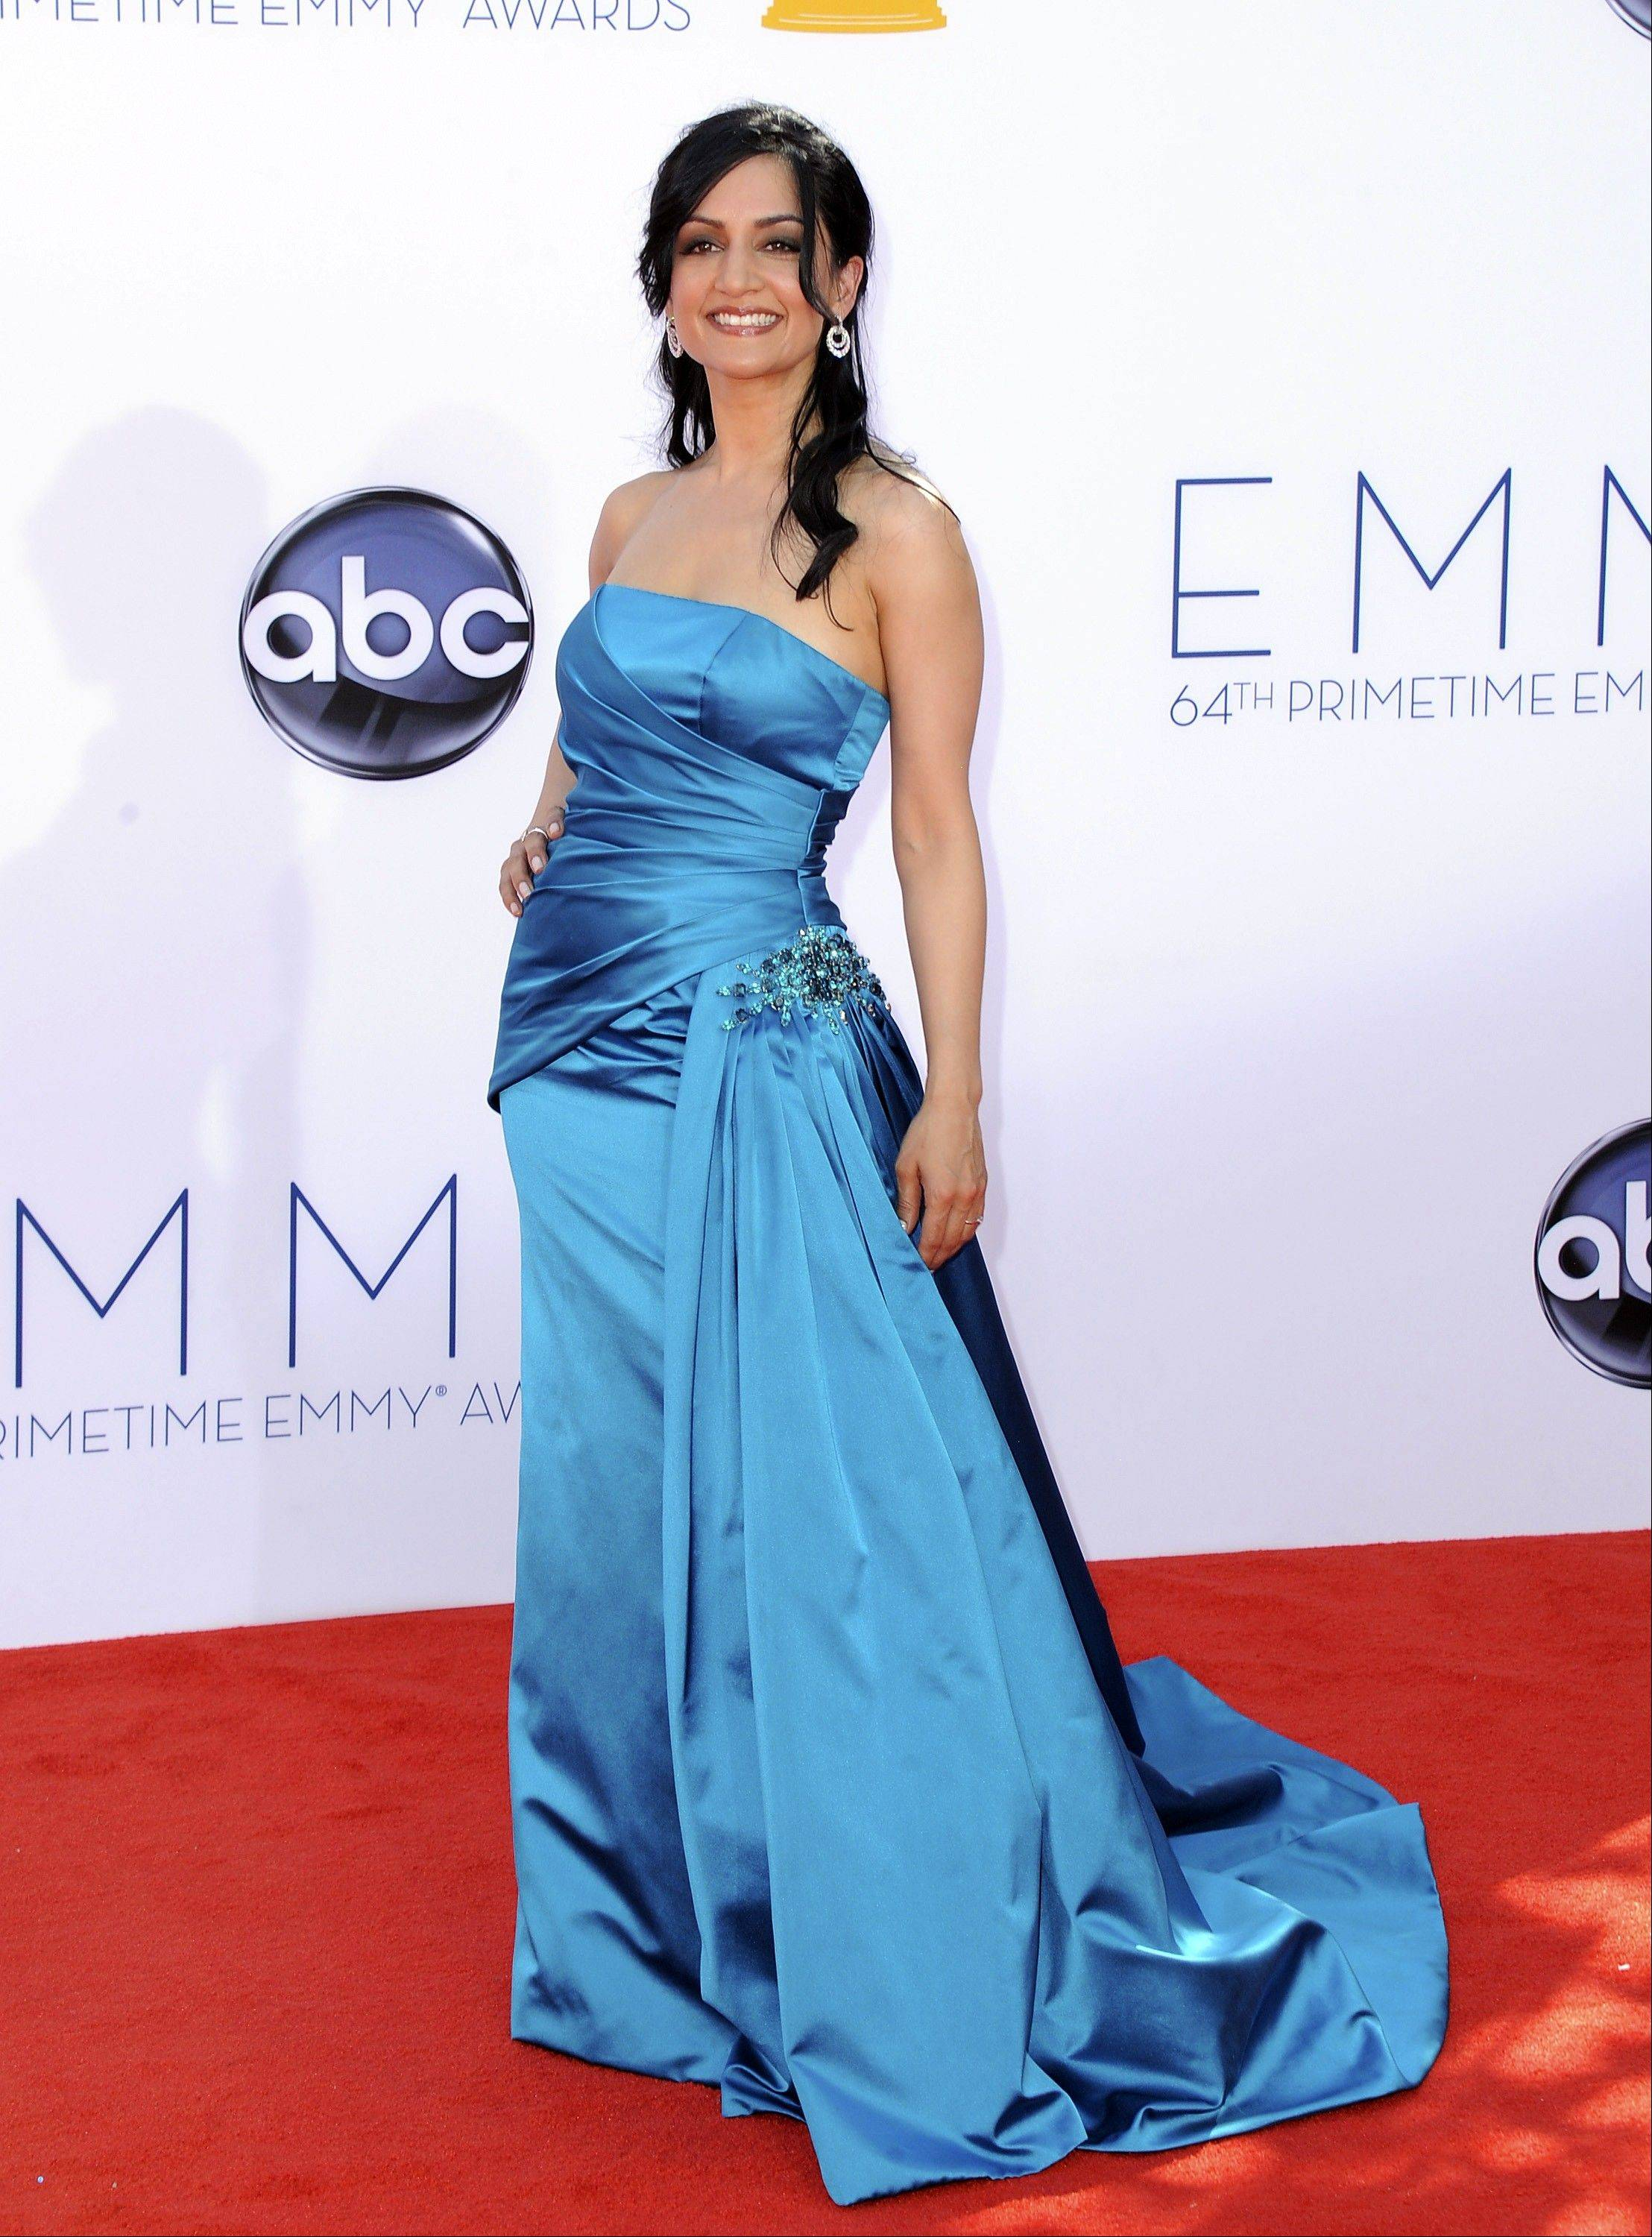 """The Good Wife"" star Archie Panjabi is all smiles in her glamourous blue gown."